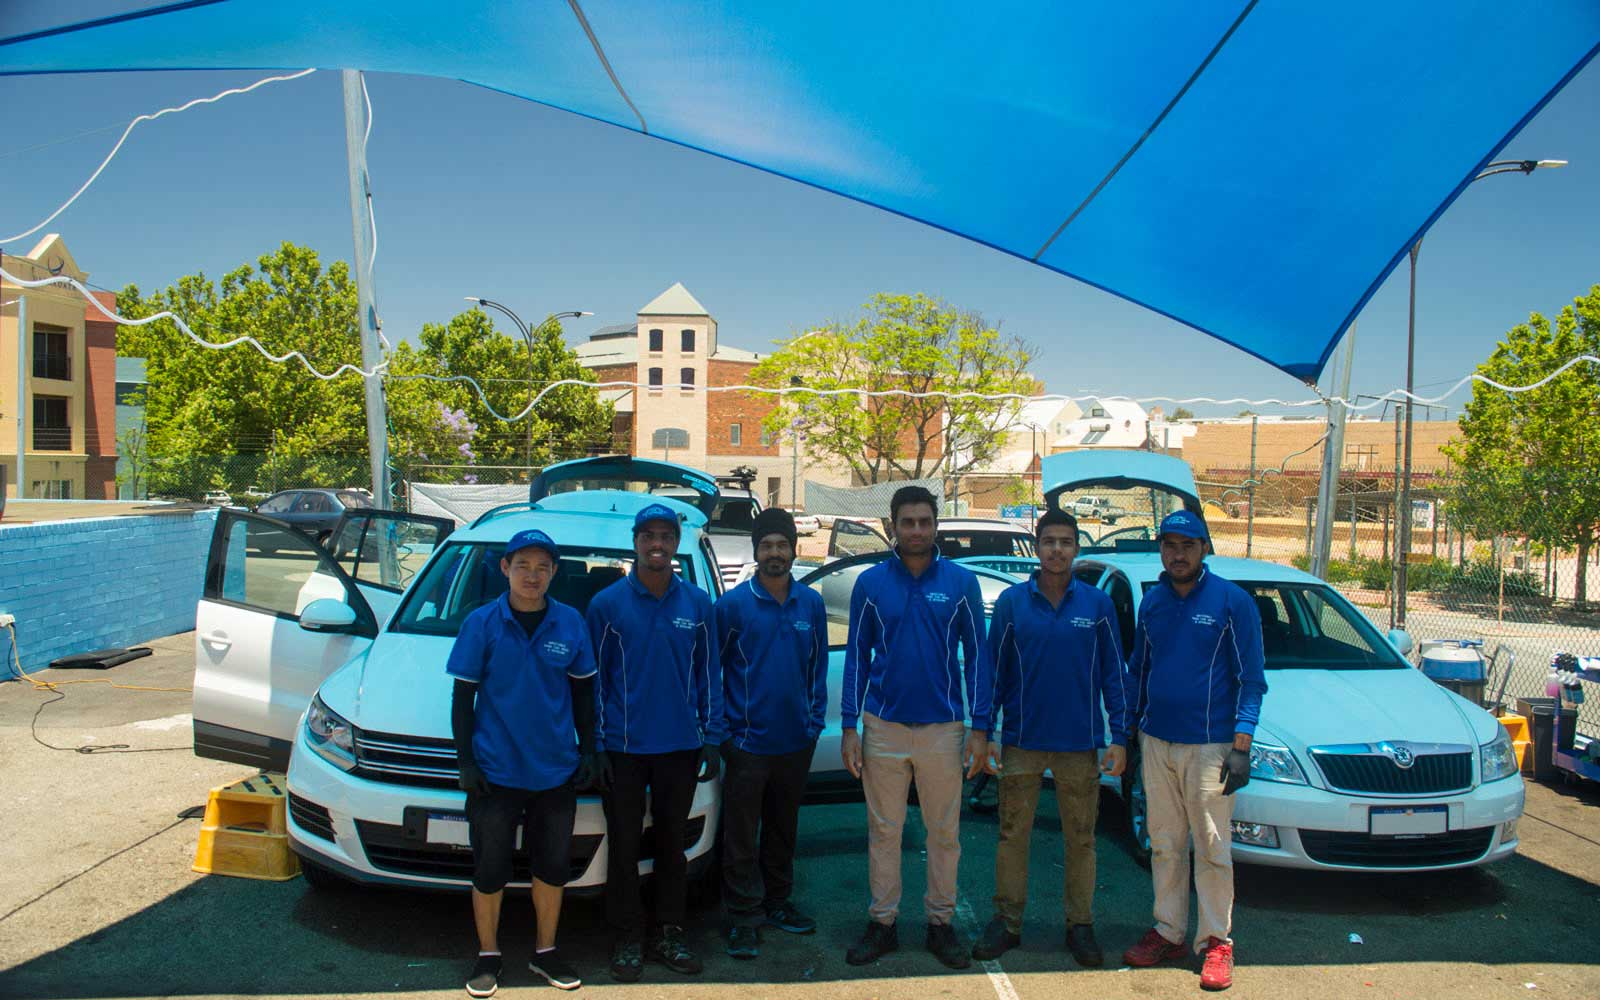 Impeccable Hand Car Wash & Detailing Subiaco Team Photo